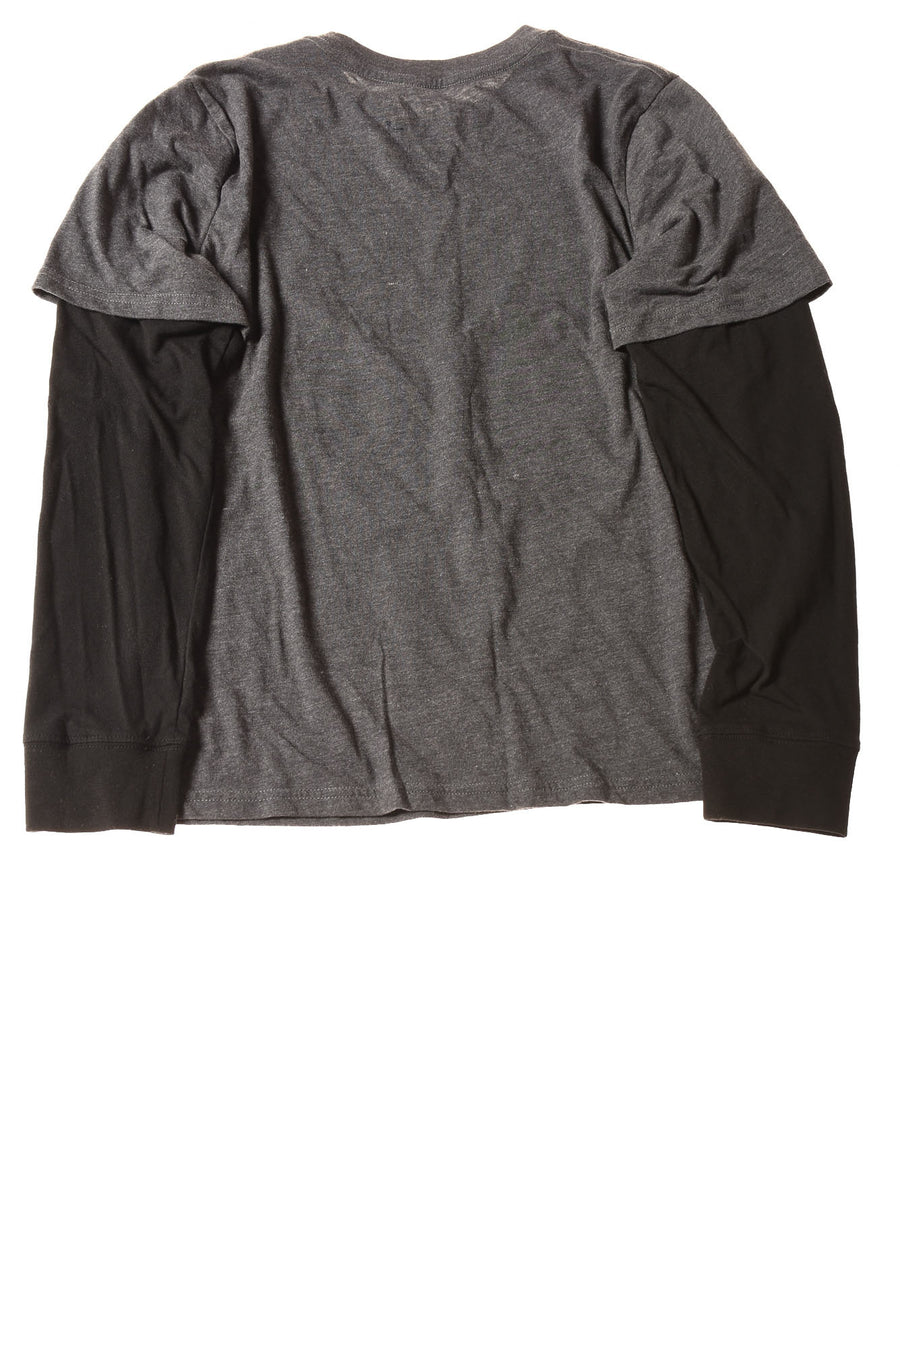 USED Hybrid Boy's Shirt X-Large Charcoal